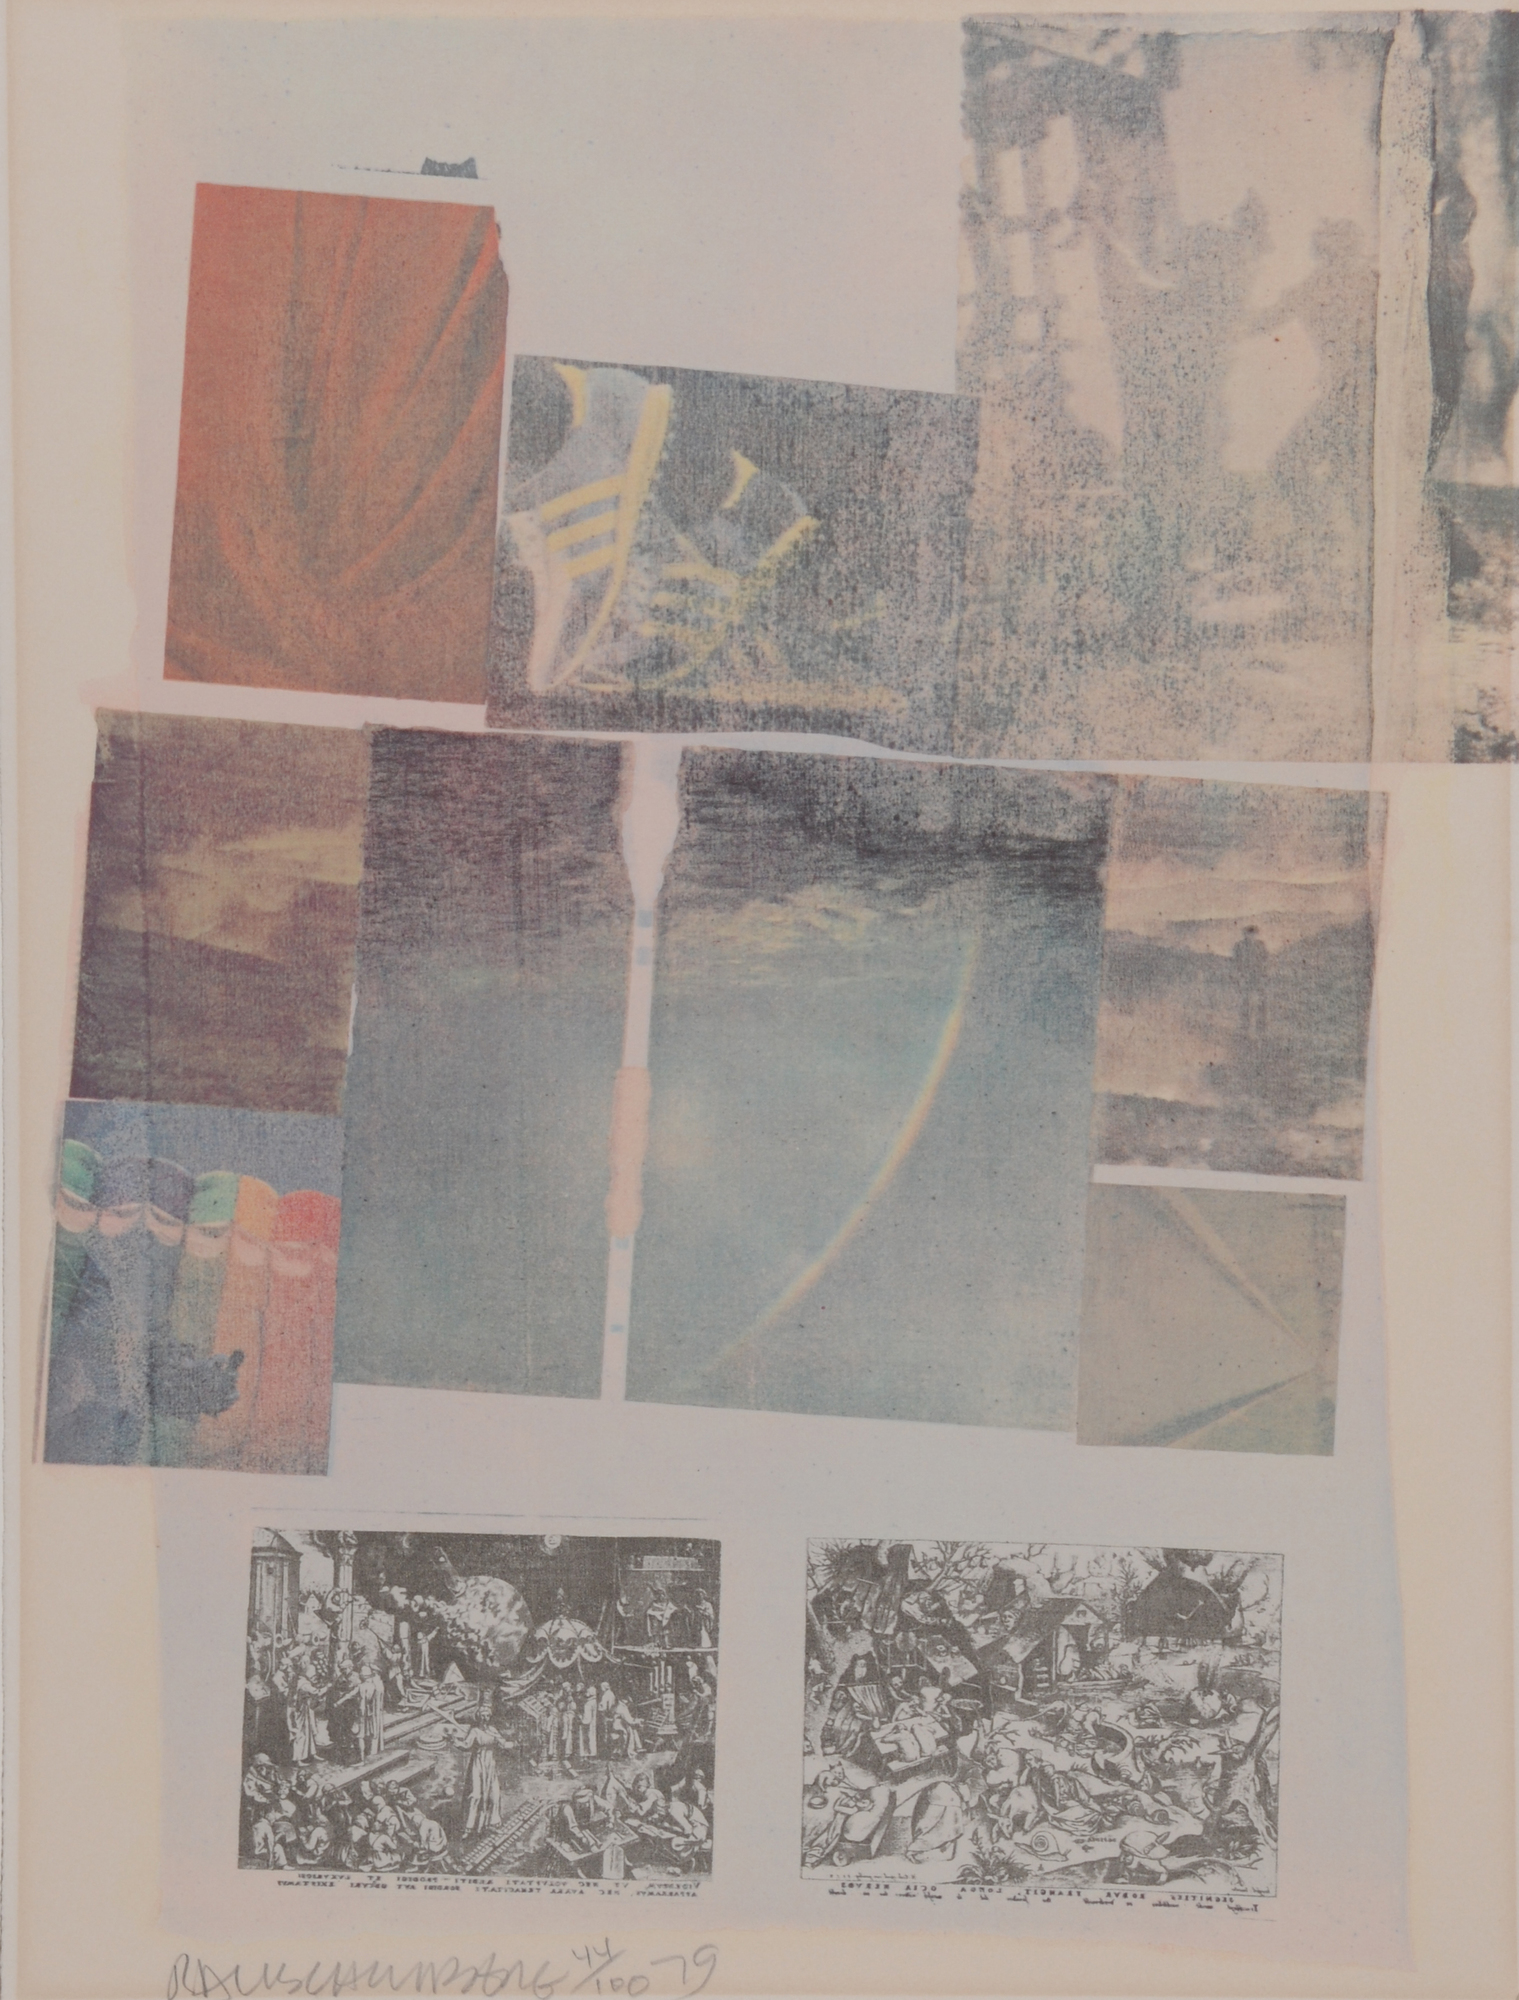 Rauschenberg Robert, People Have Enough Trouble Without Being Intimidated by an Artichoke